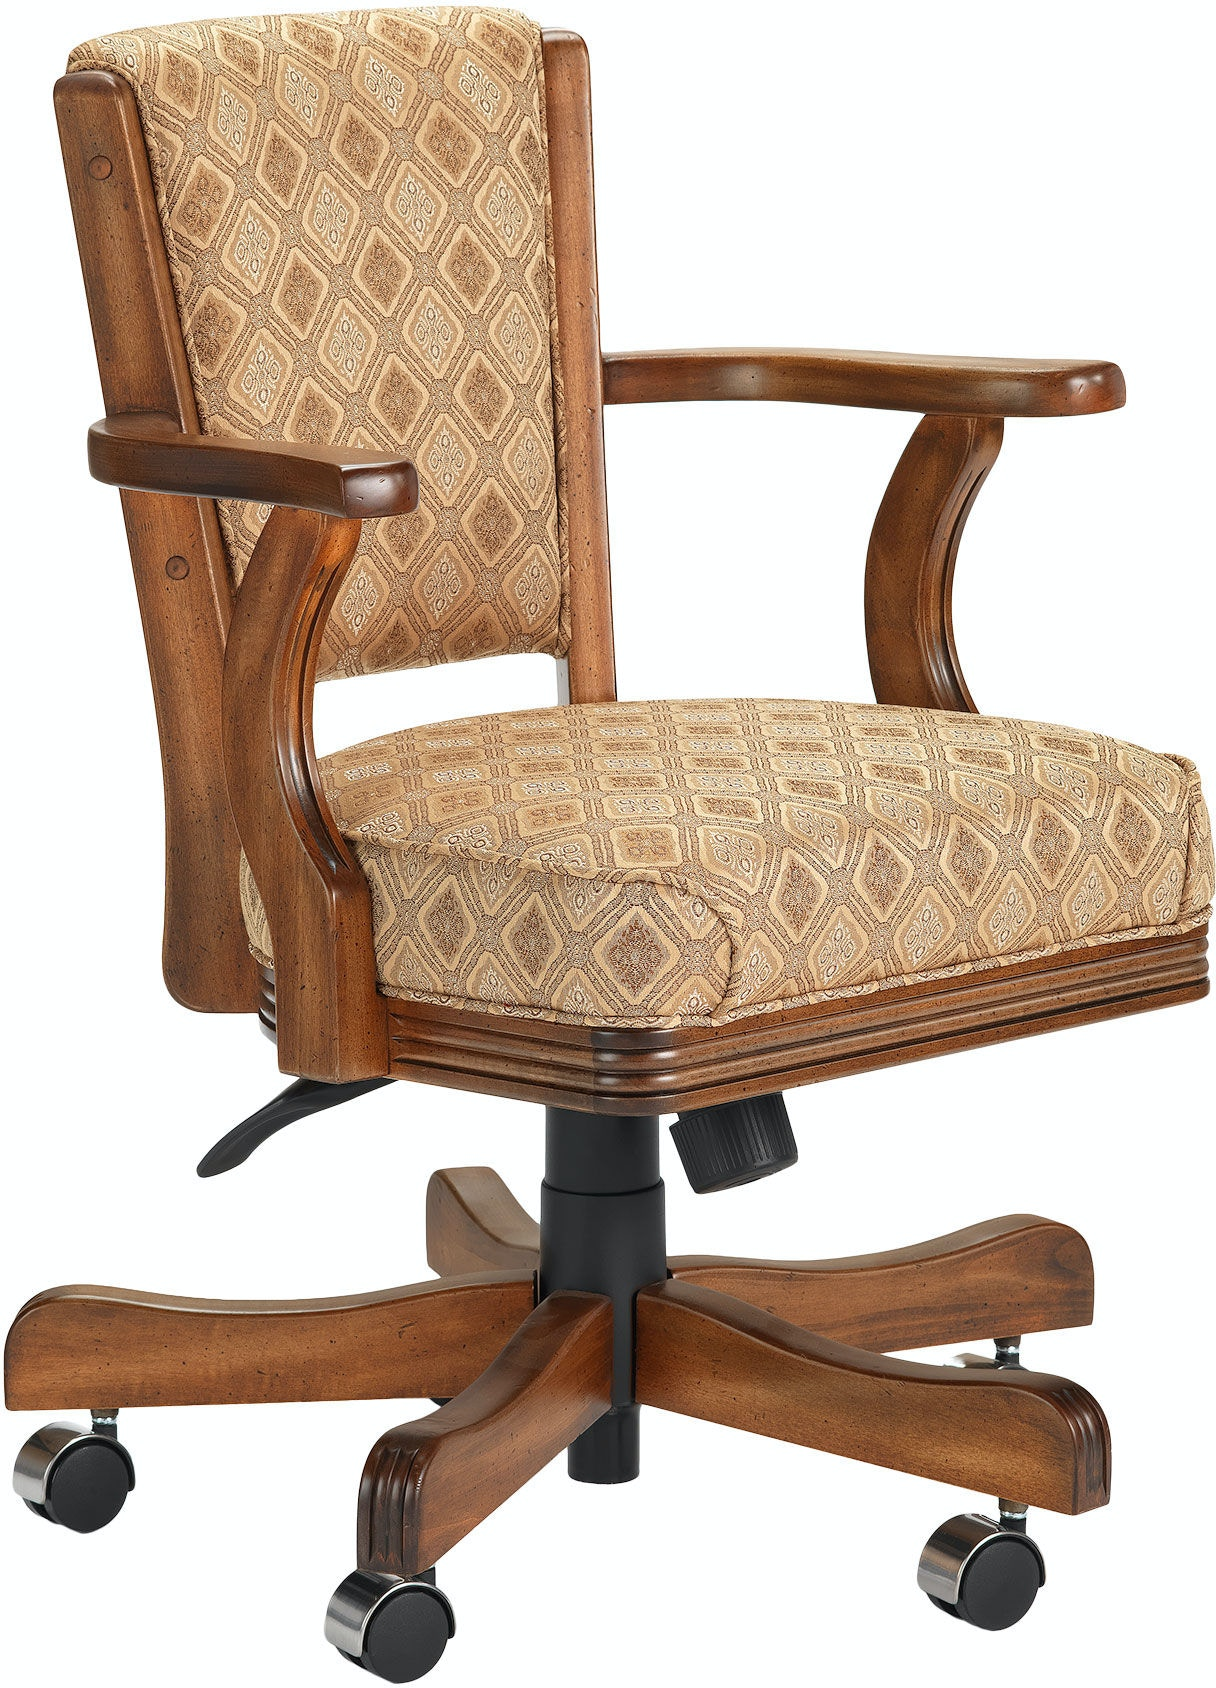 Darafeev Bar And Game Room Game Chair 910 Gc Zing Casual